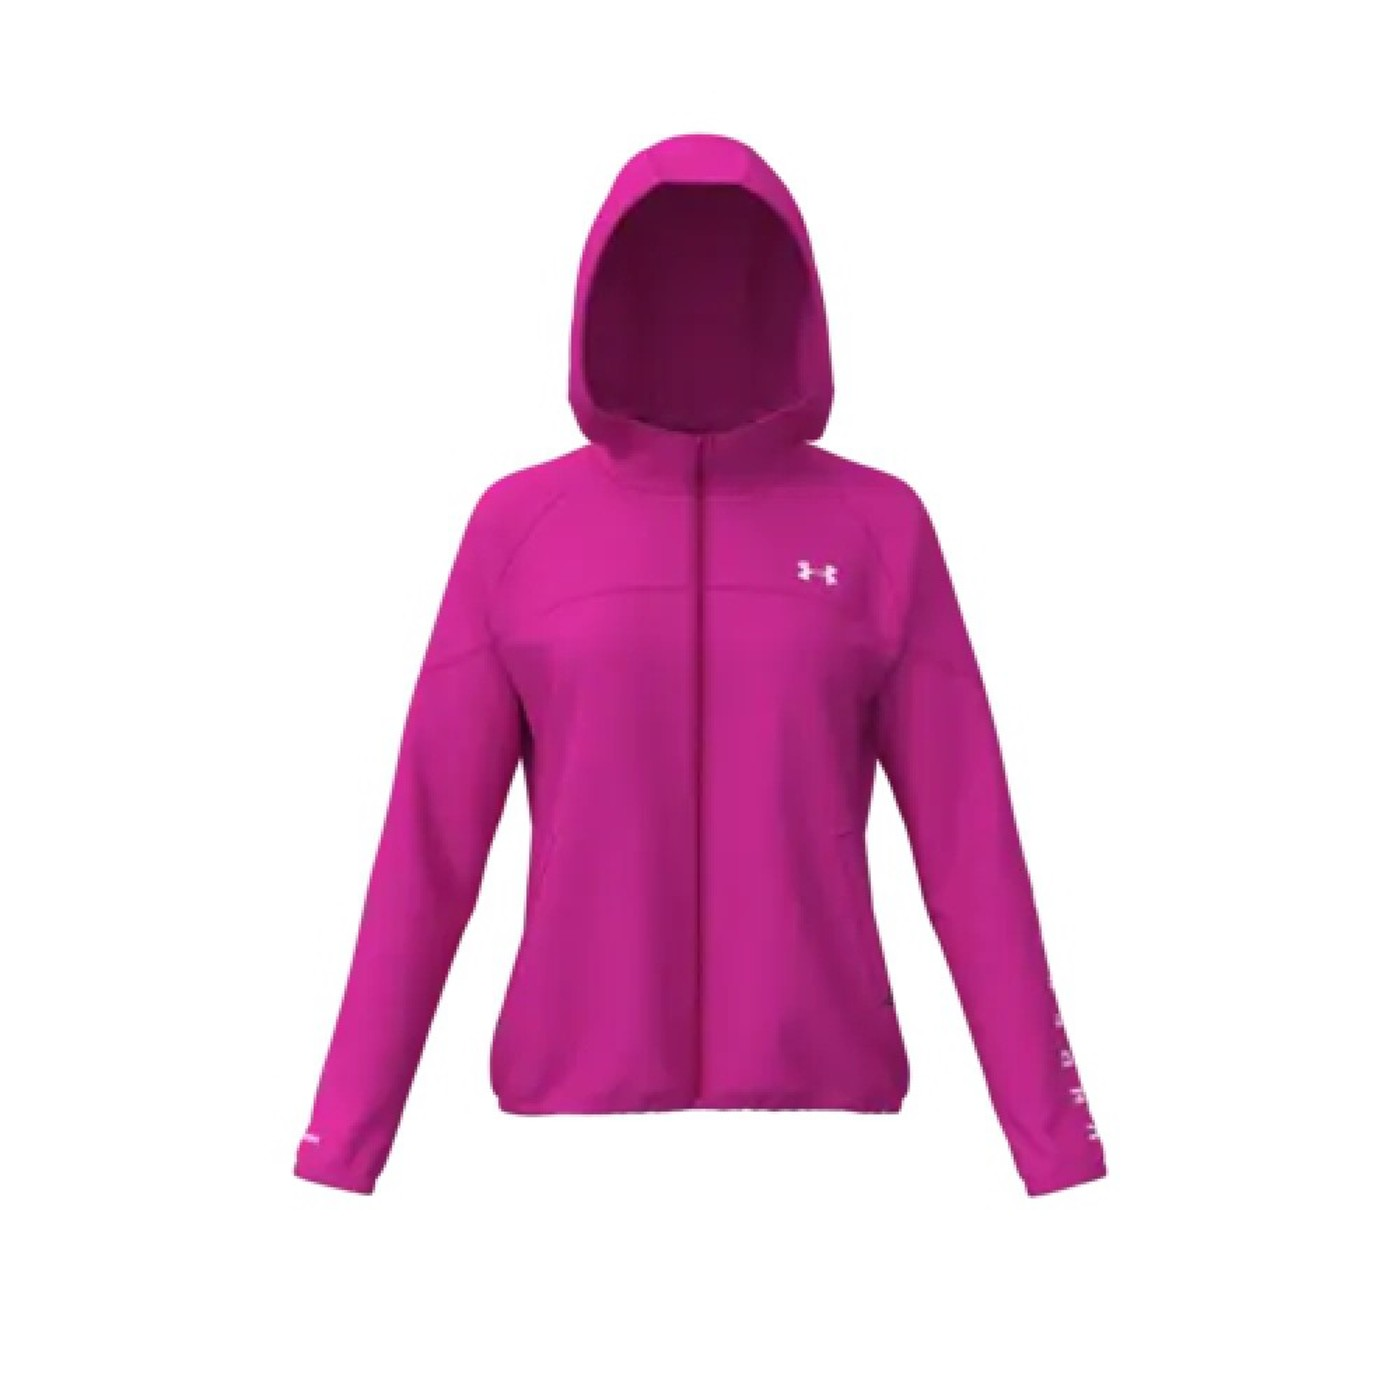 UNDER ARMOUR Woven Hooded Jacket - Damen